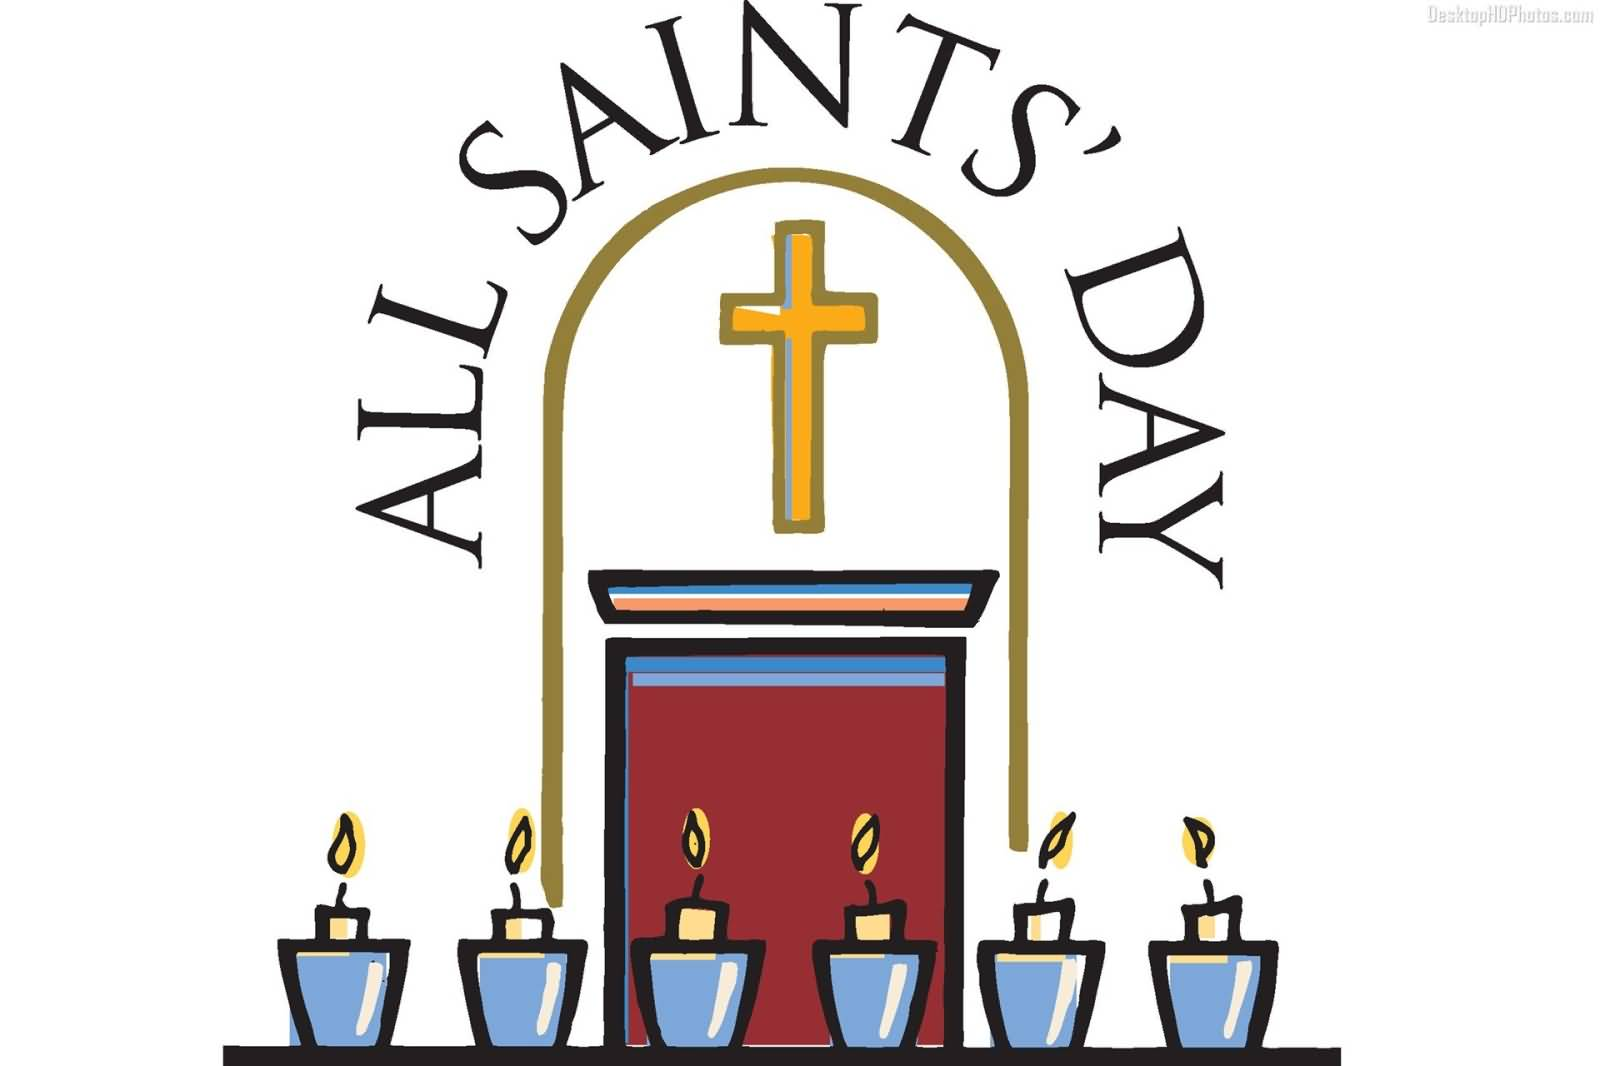 All Saints Day Clip Art - ClipArt Best